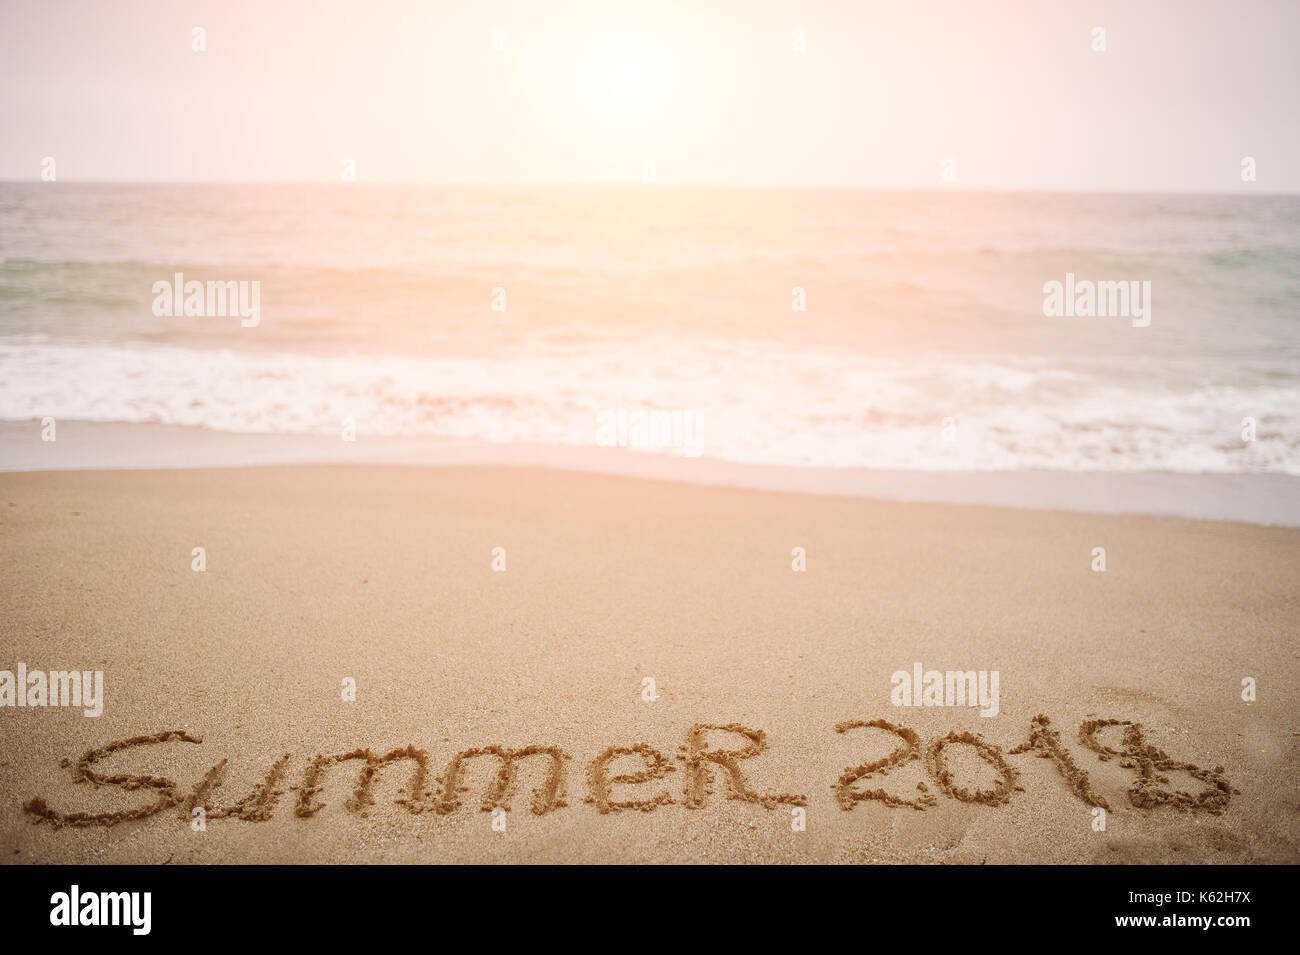 Wonderful Summer 2018. New Year 2018 Is Coming Concept. Sea And Sand.